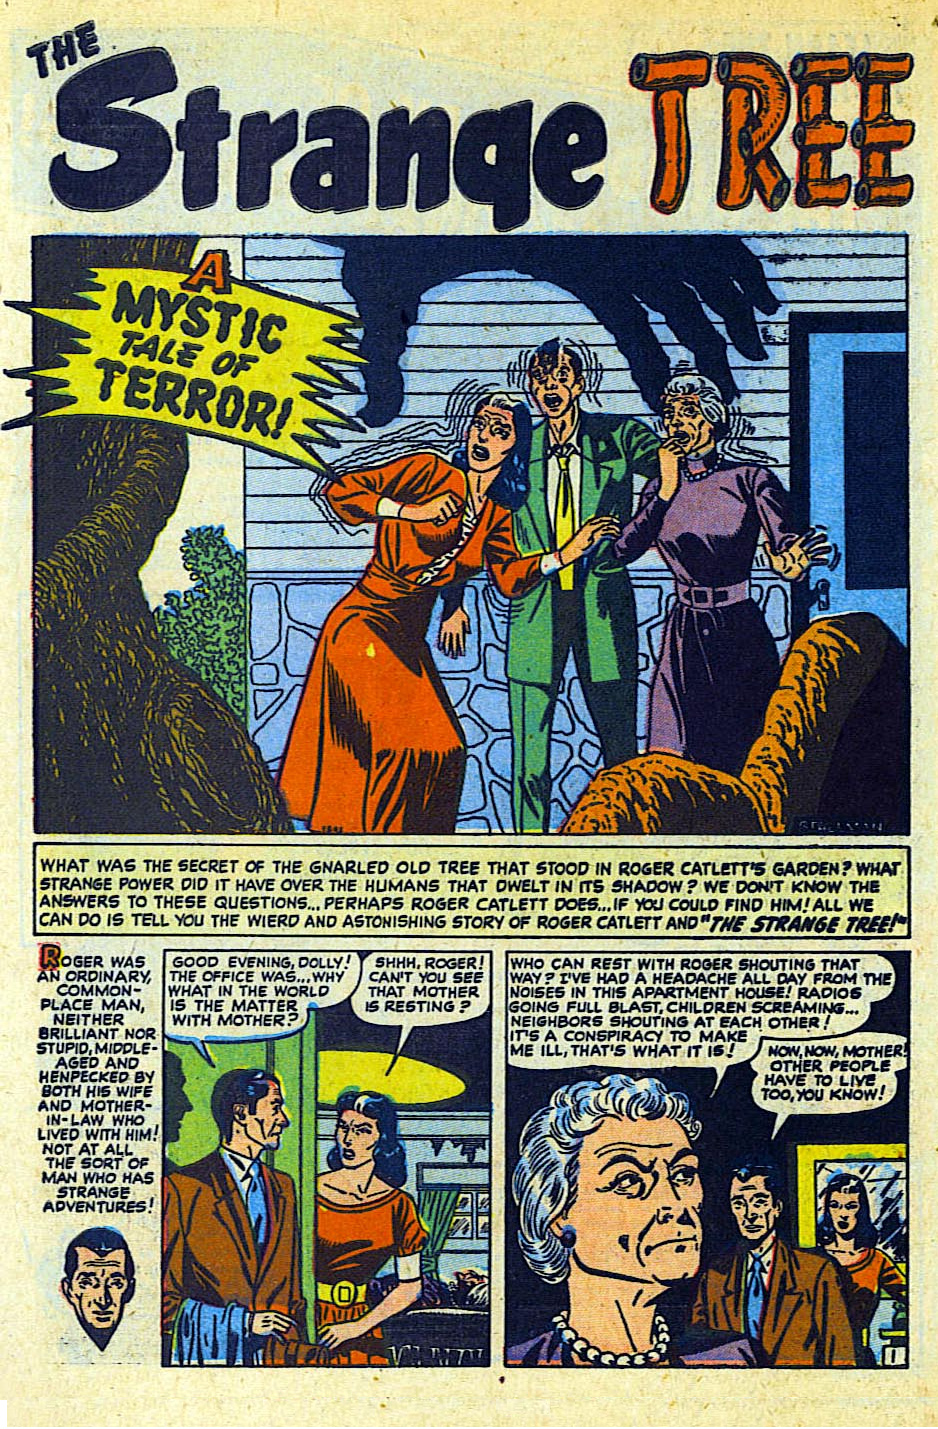 """The Strange Tree""  Mystic  #1 (March 1951)   Scan from The Horrors of It All"